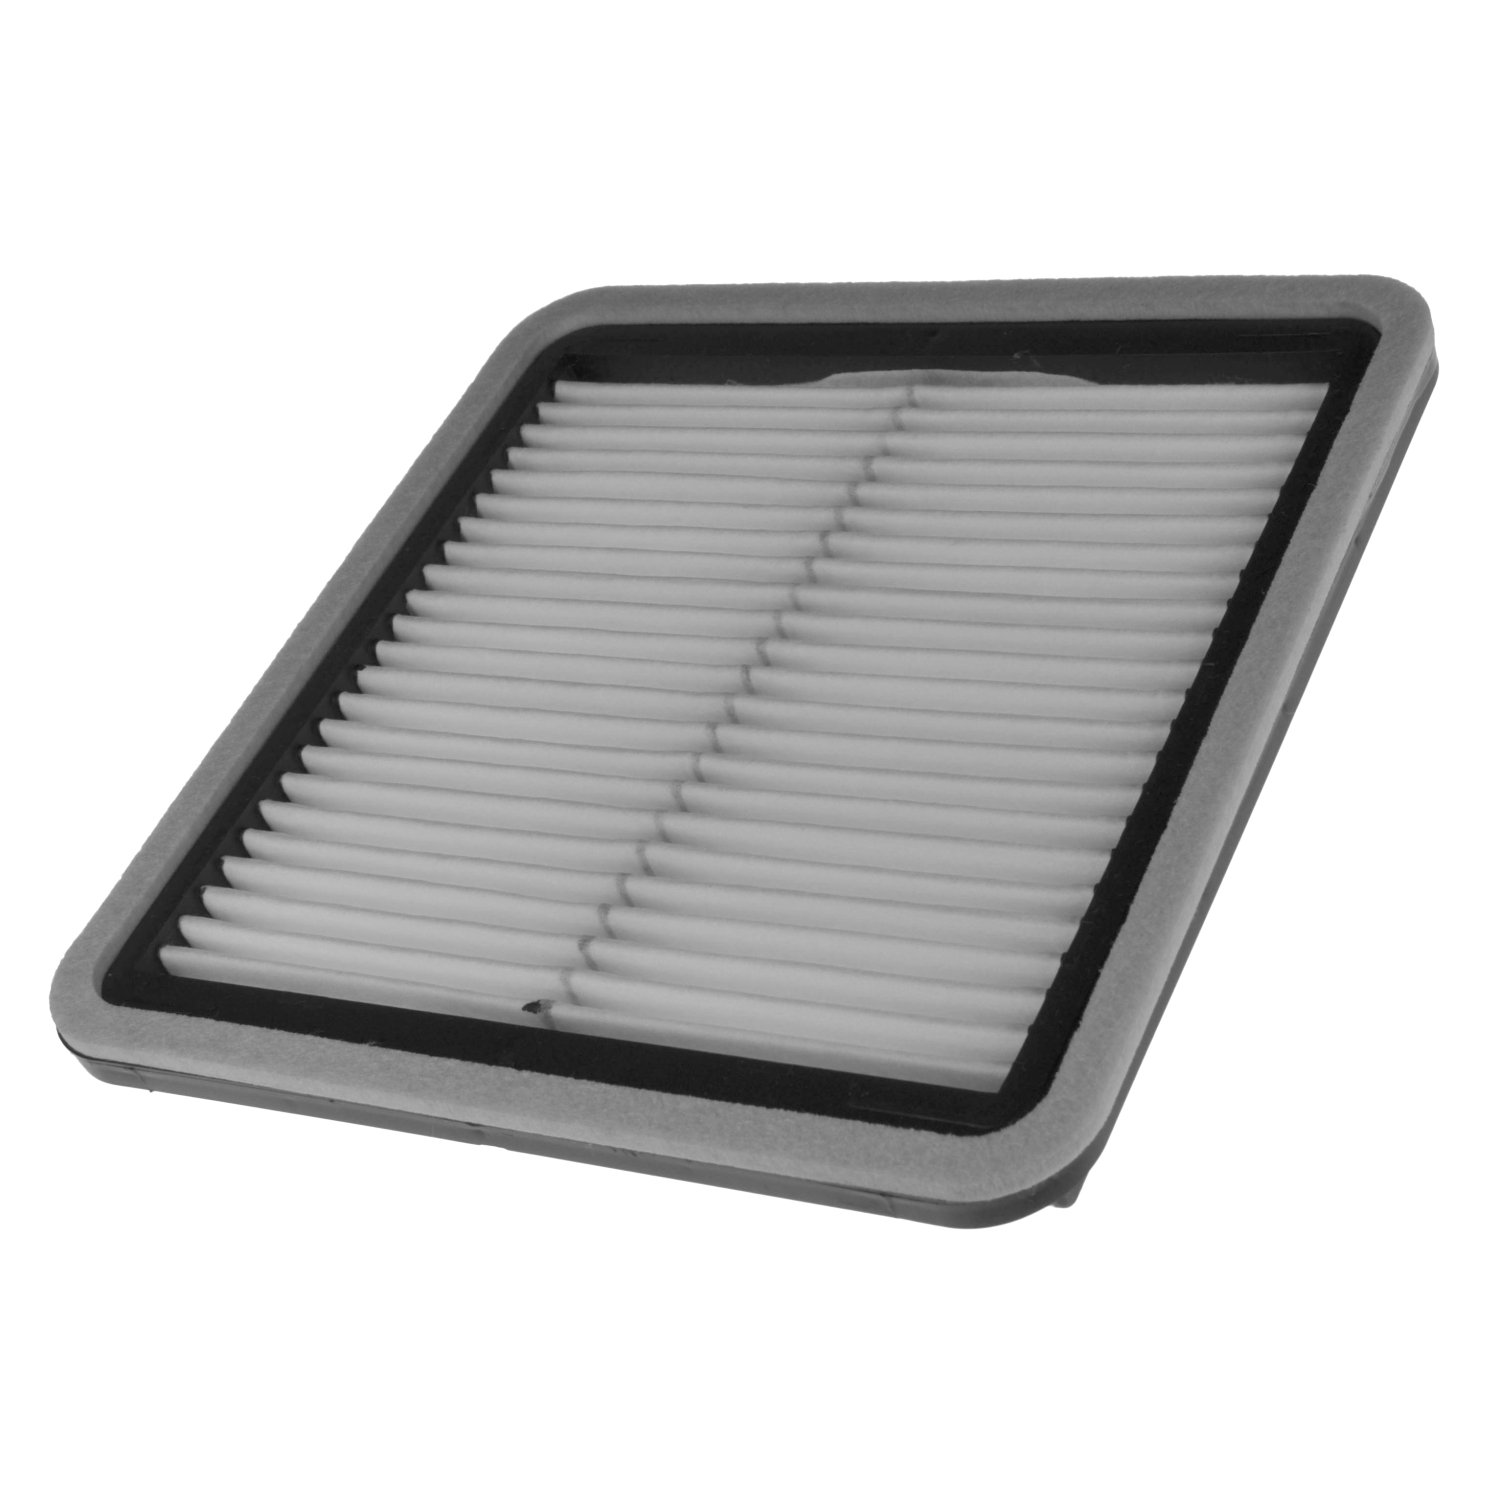 Blue Print ADS72213 Air Filter, pack of one